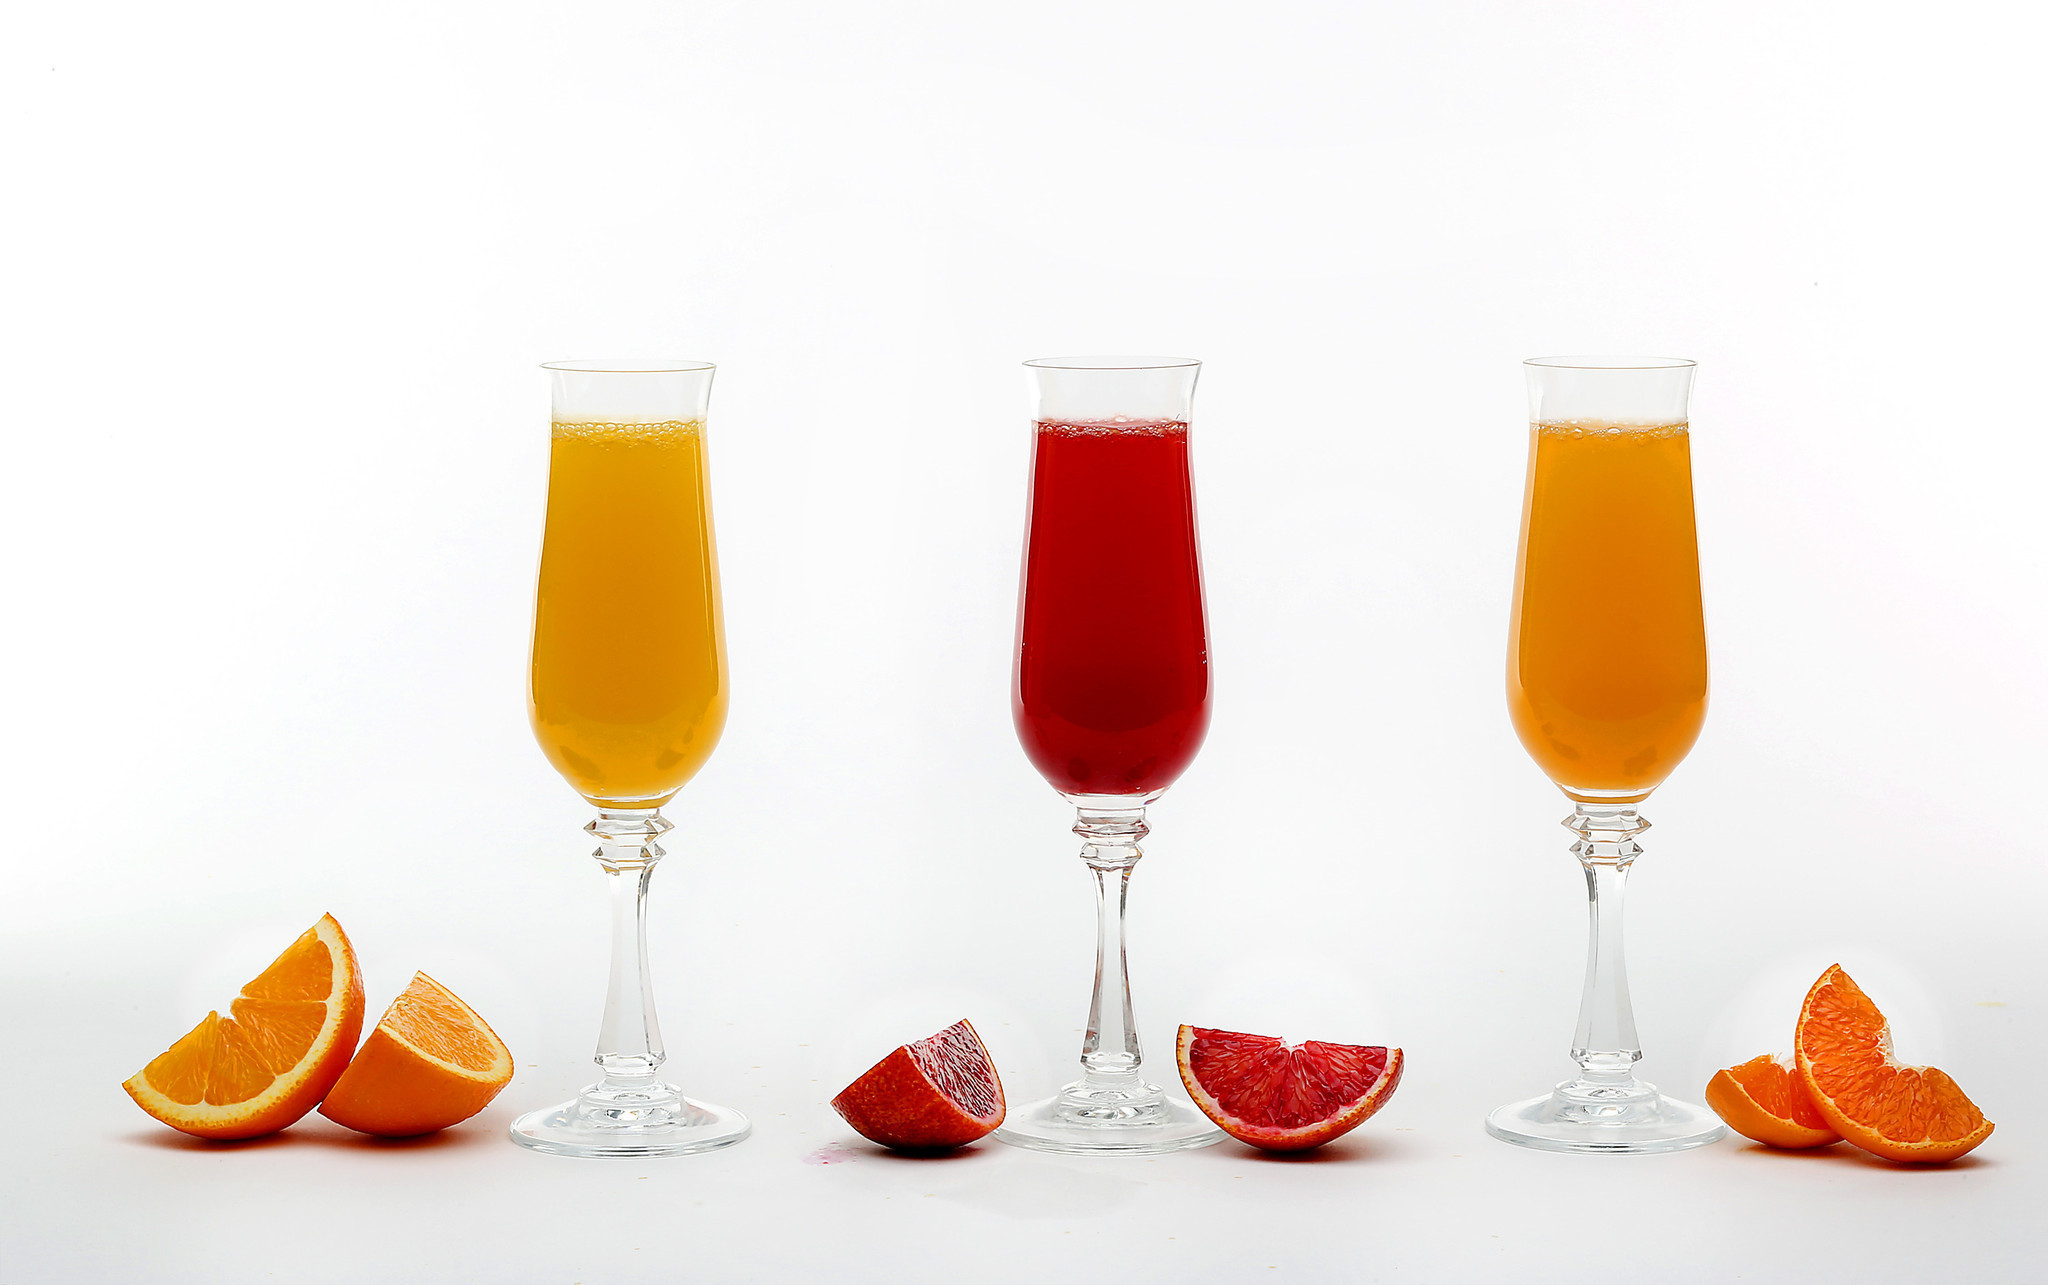 California residents could soon be sipping mimosas (legally) while they get their hair styled, under a bill signed Wednesday by Gov. Jerry Brown. (Kirk McKoy / Los Angeles Times)